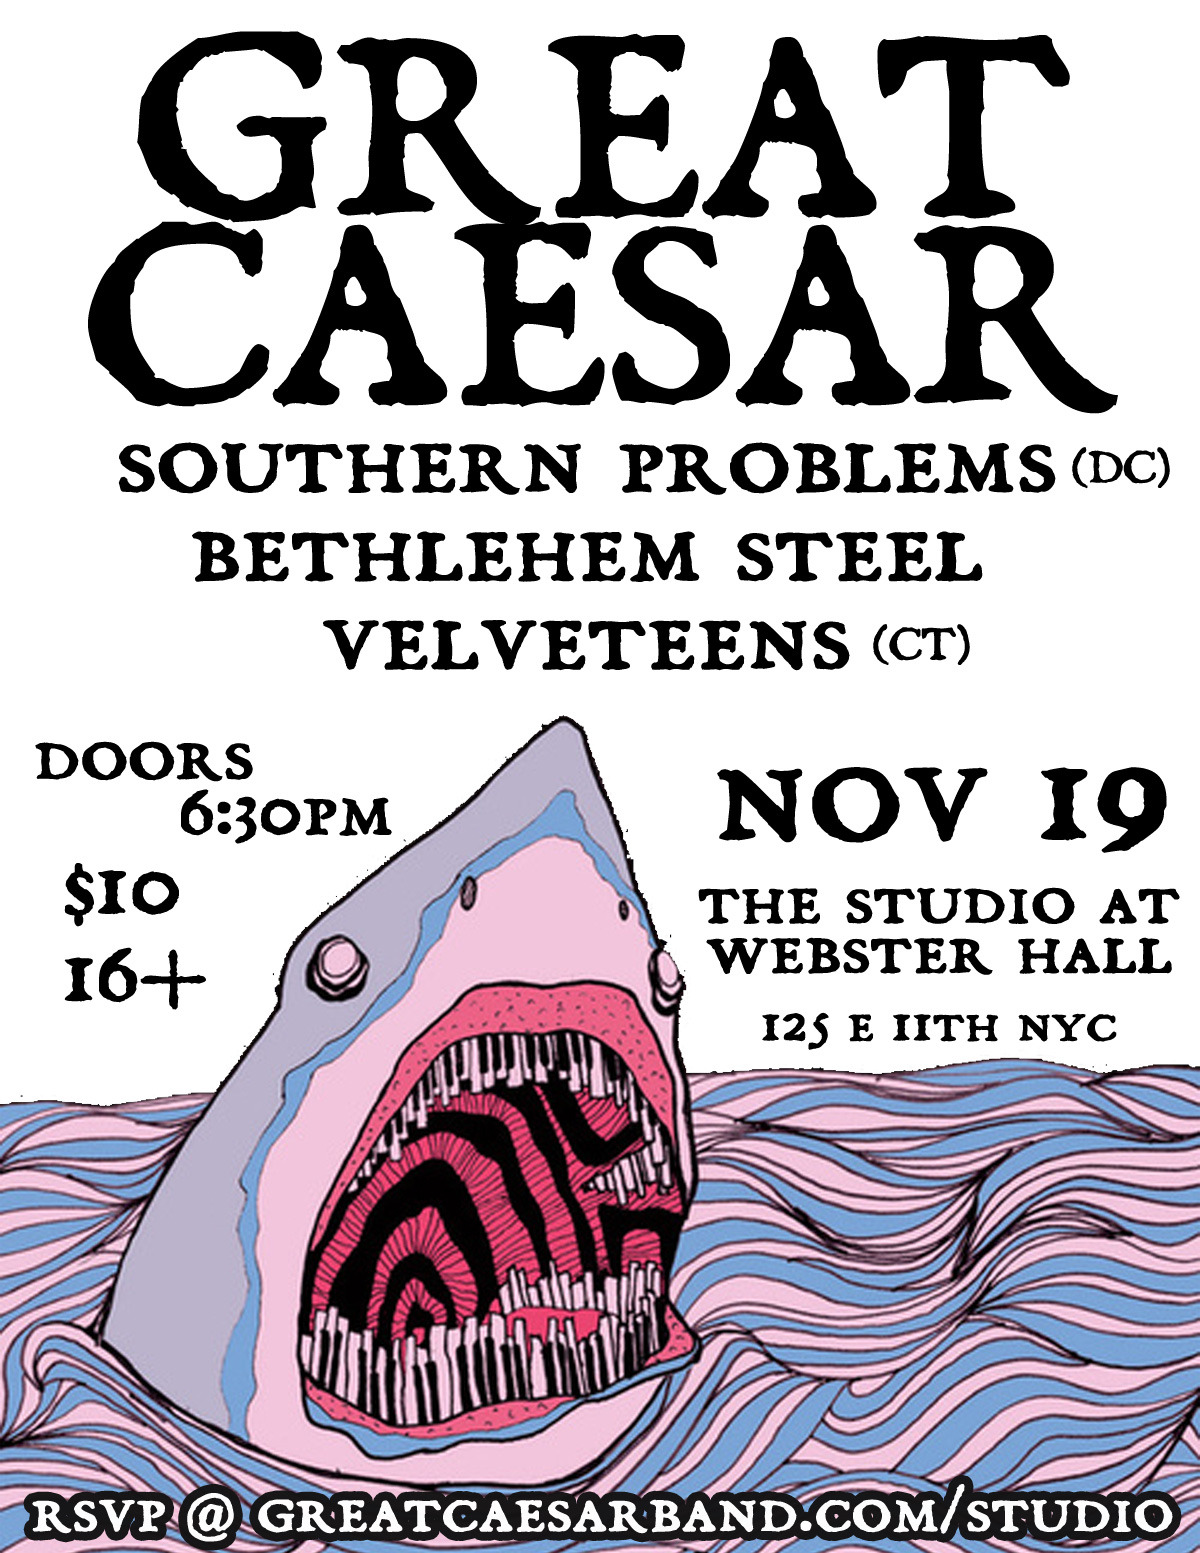 At long last, a show in NYC that ISN'T 21+! Nov 19 @ the Studio at Webster Hallw/Southern Problems, Bethlehem Steel, VelveteensDoors 6:30 / $10 / 16+RSVP on Facebook Since it's a Monday, we'll keep things wrapping early! Show will be done by 10:30pm! C'mon out and dance!